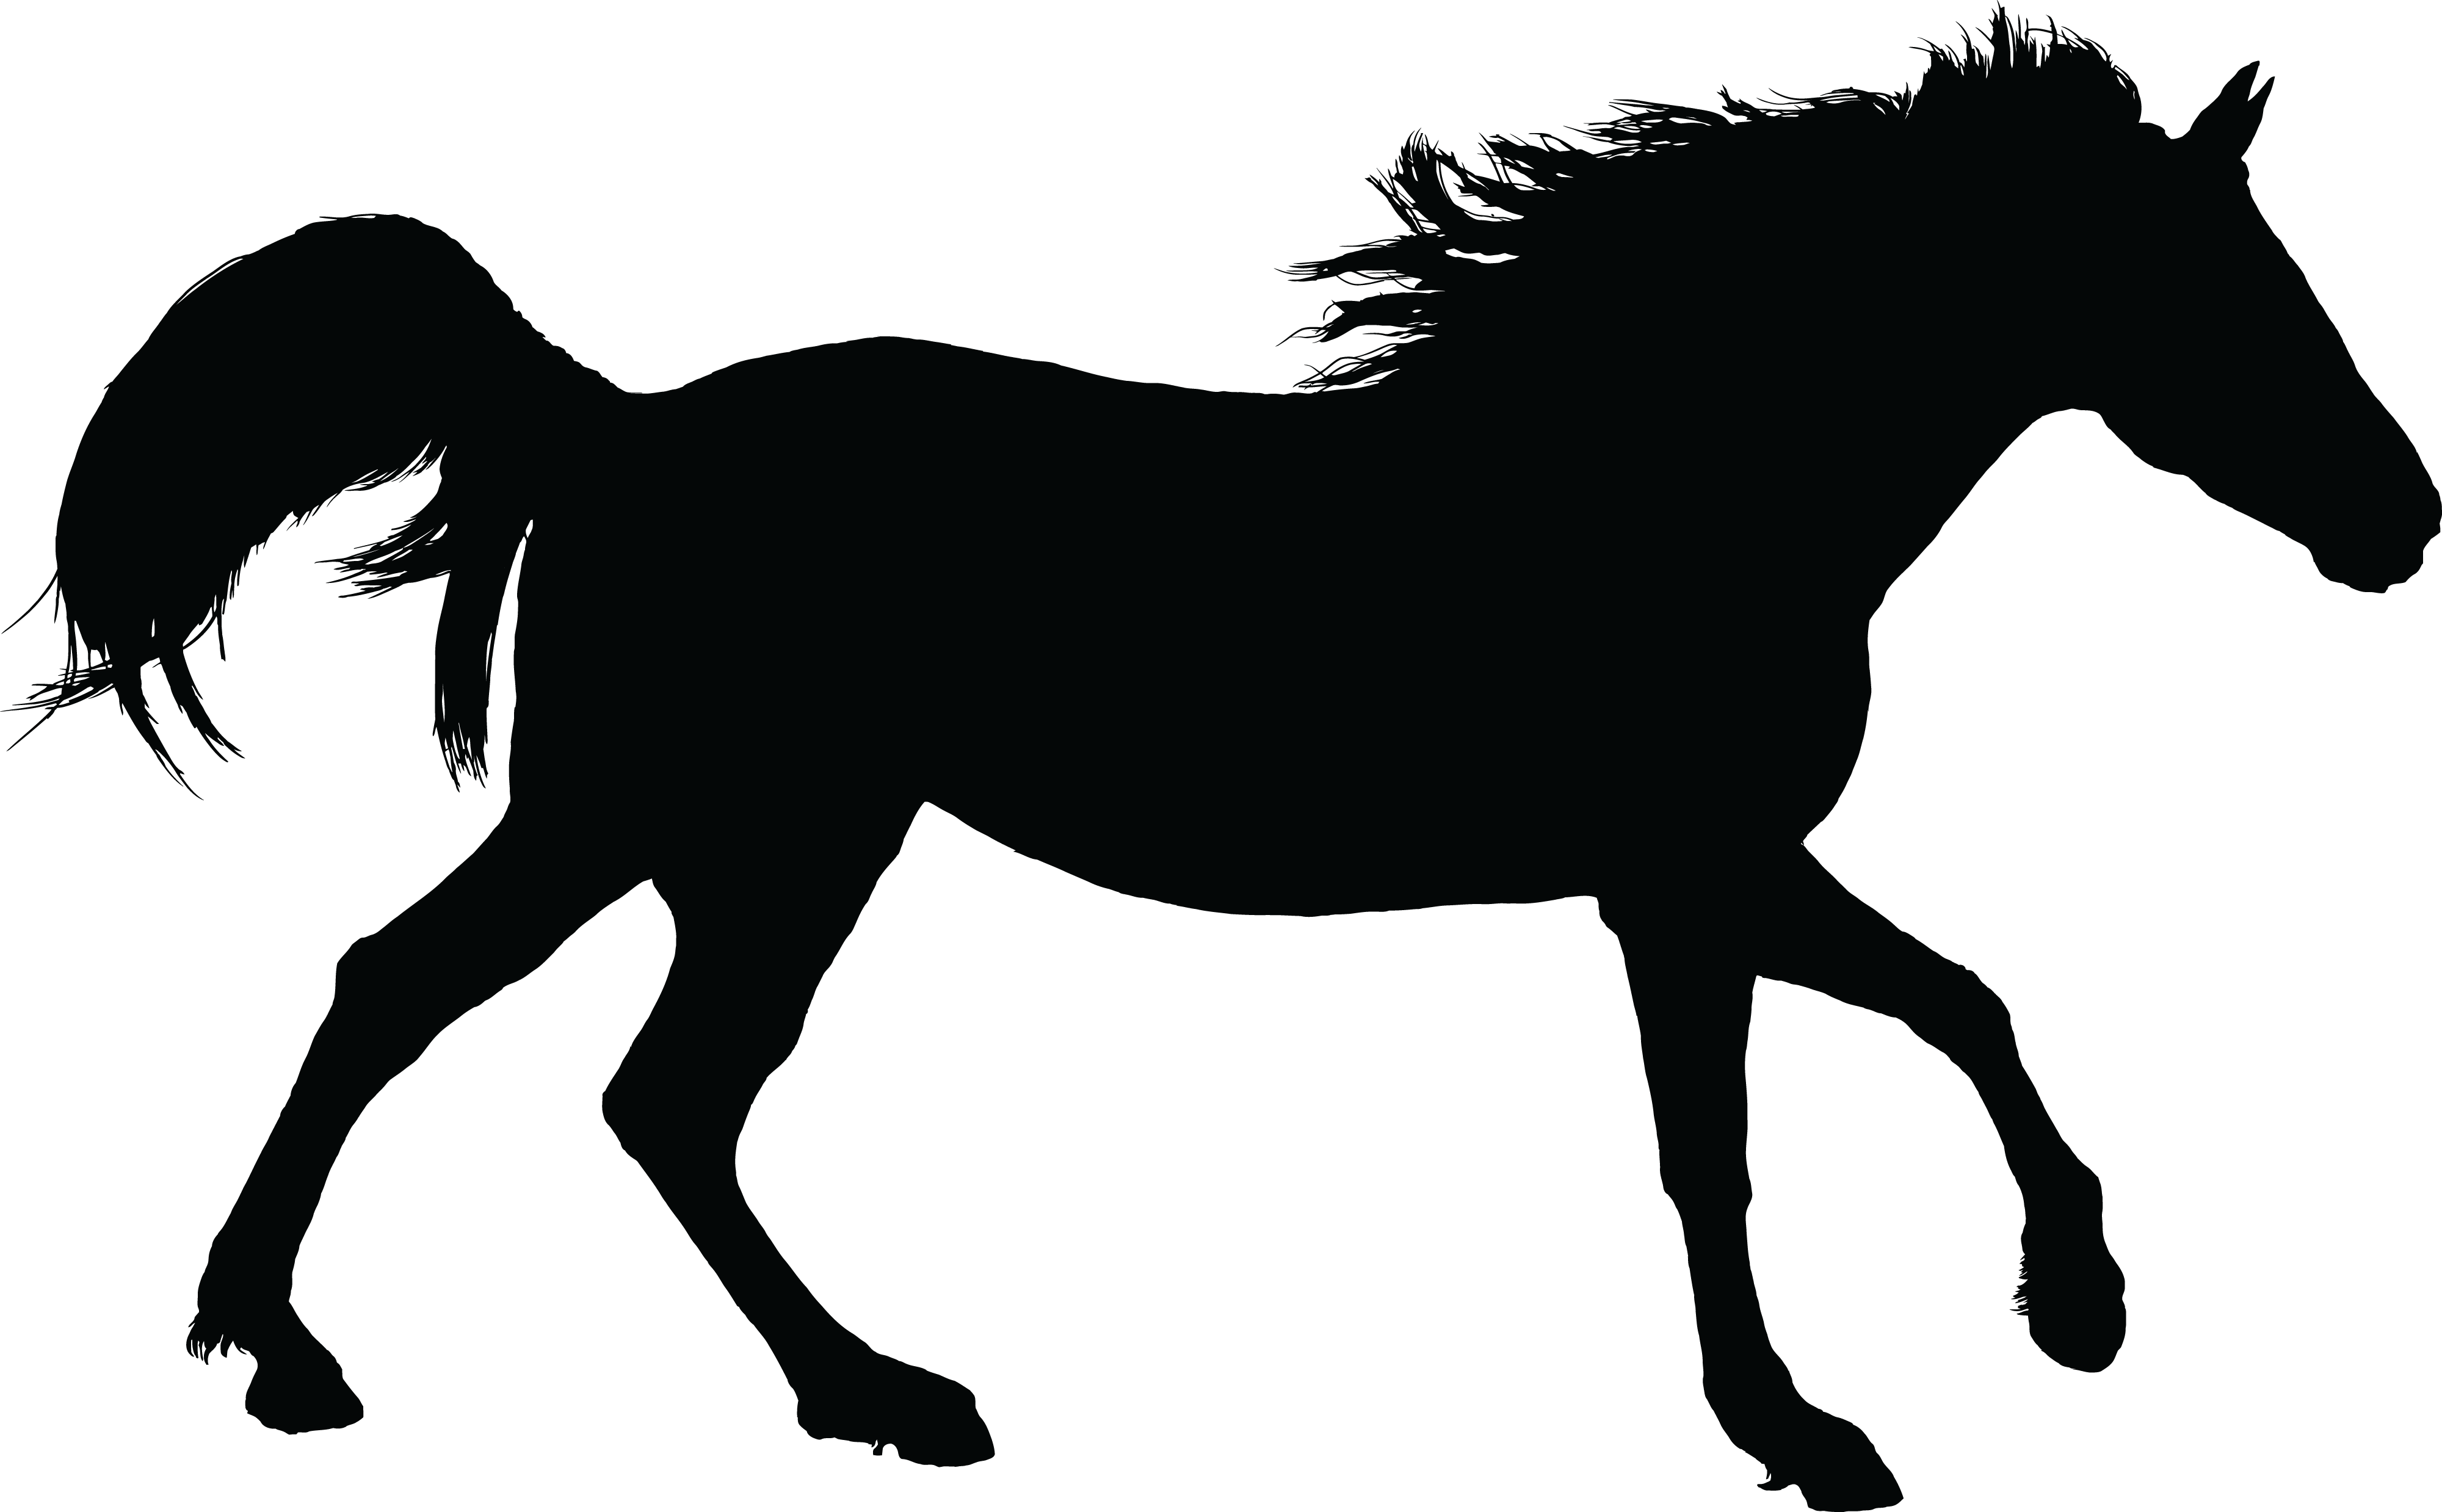 Horseshoe clipart silhouette. Cliparts for free